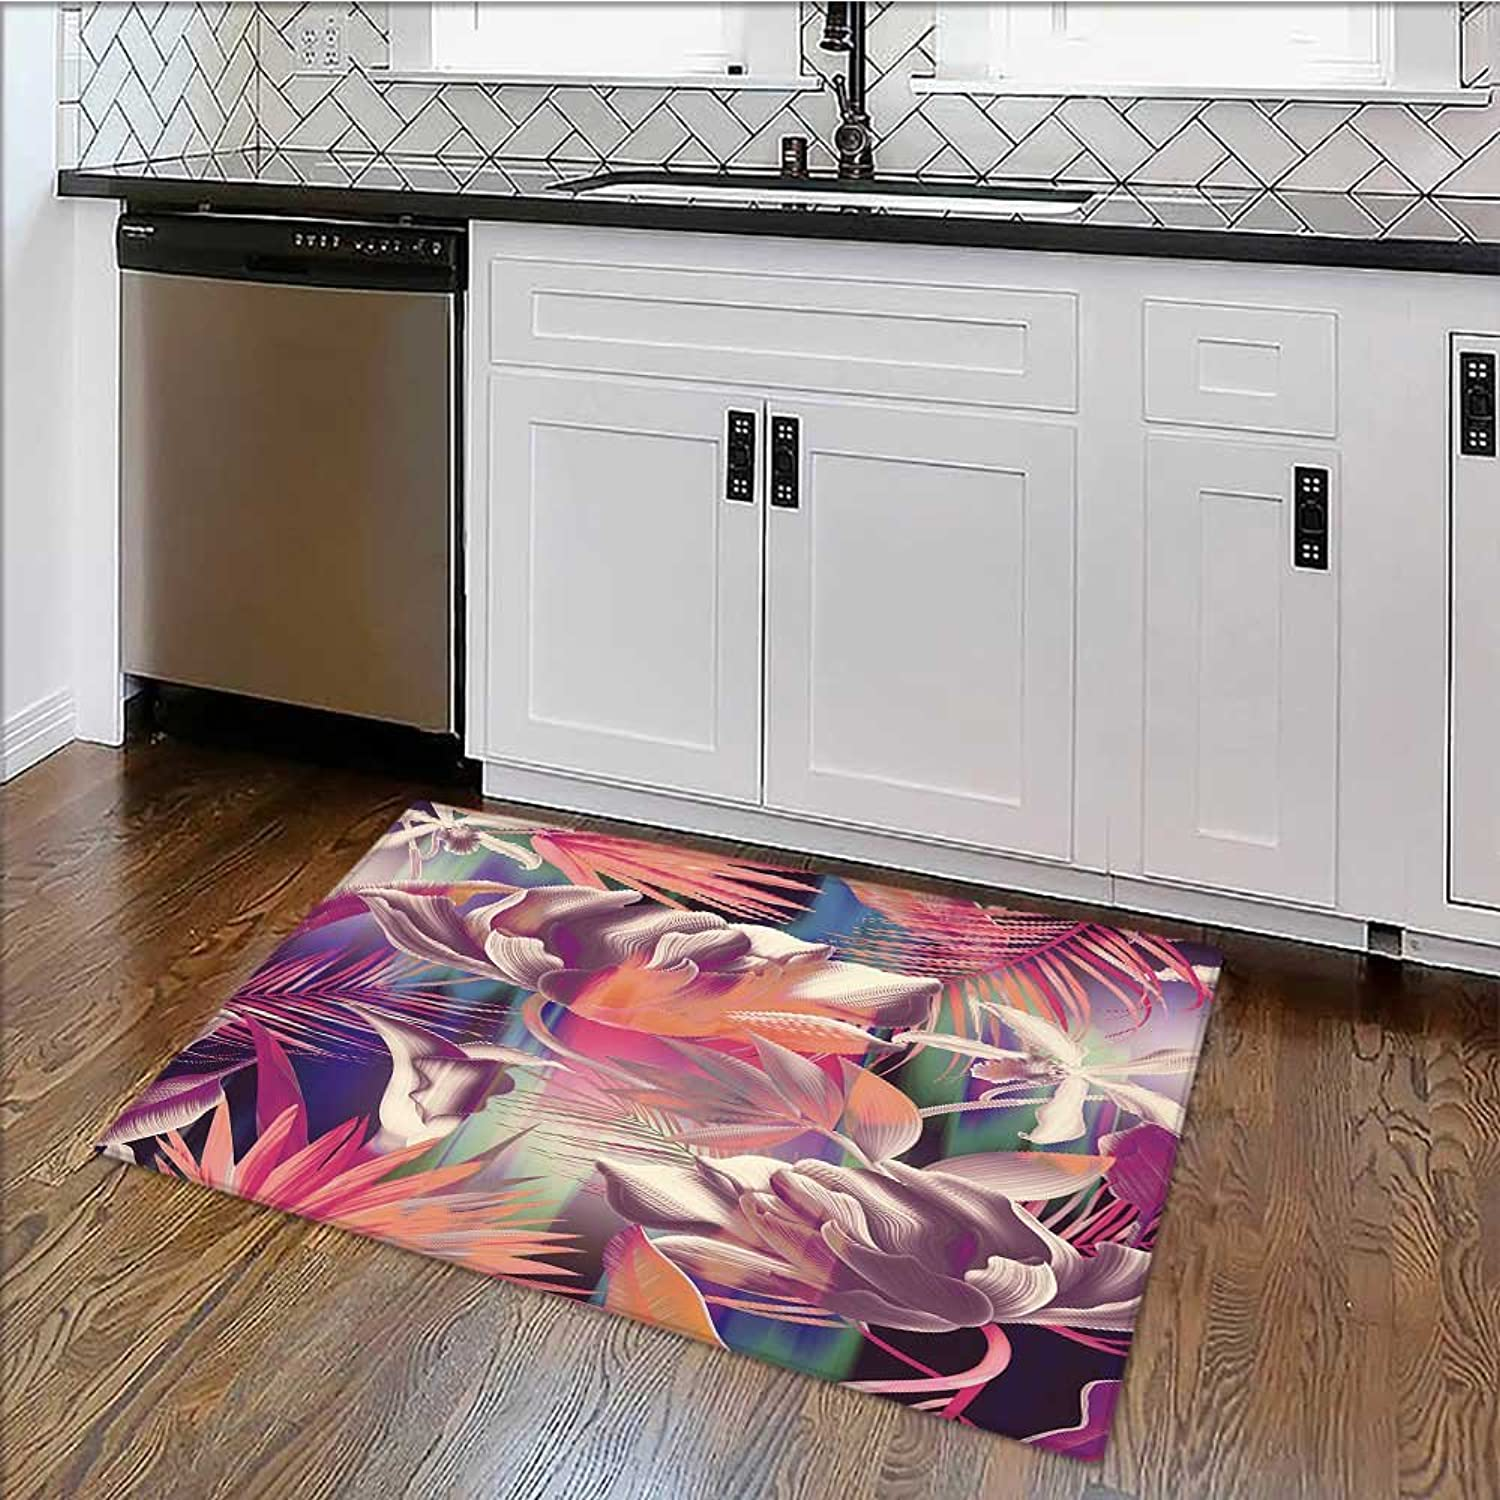 Durable Rug Tropical Flower Plant and leafbackground E x tra Absorbent W39 x H20